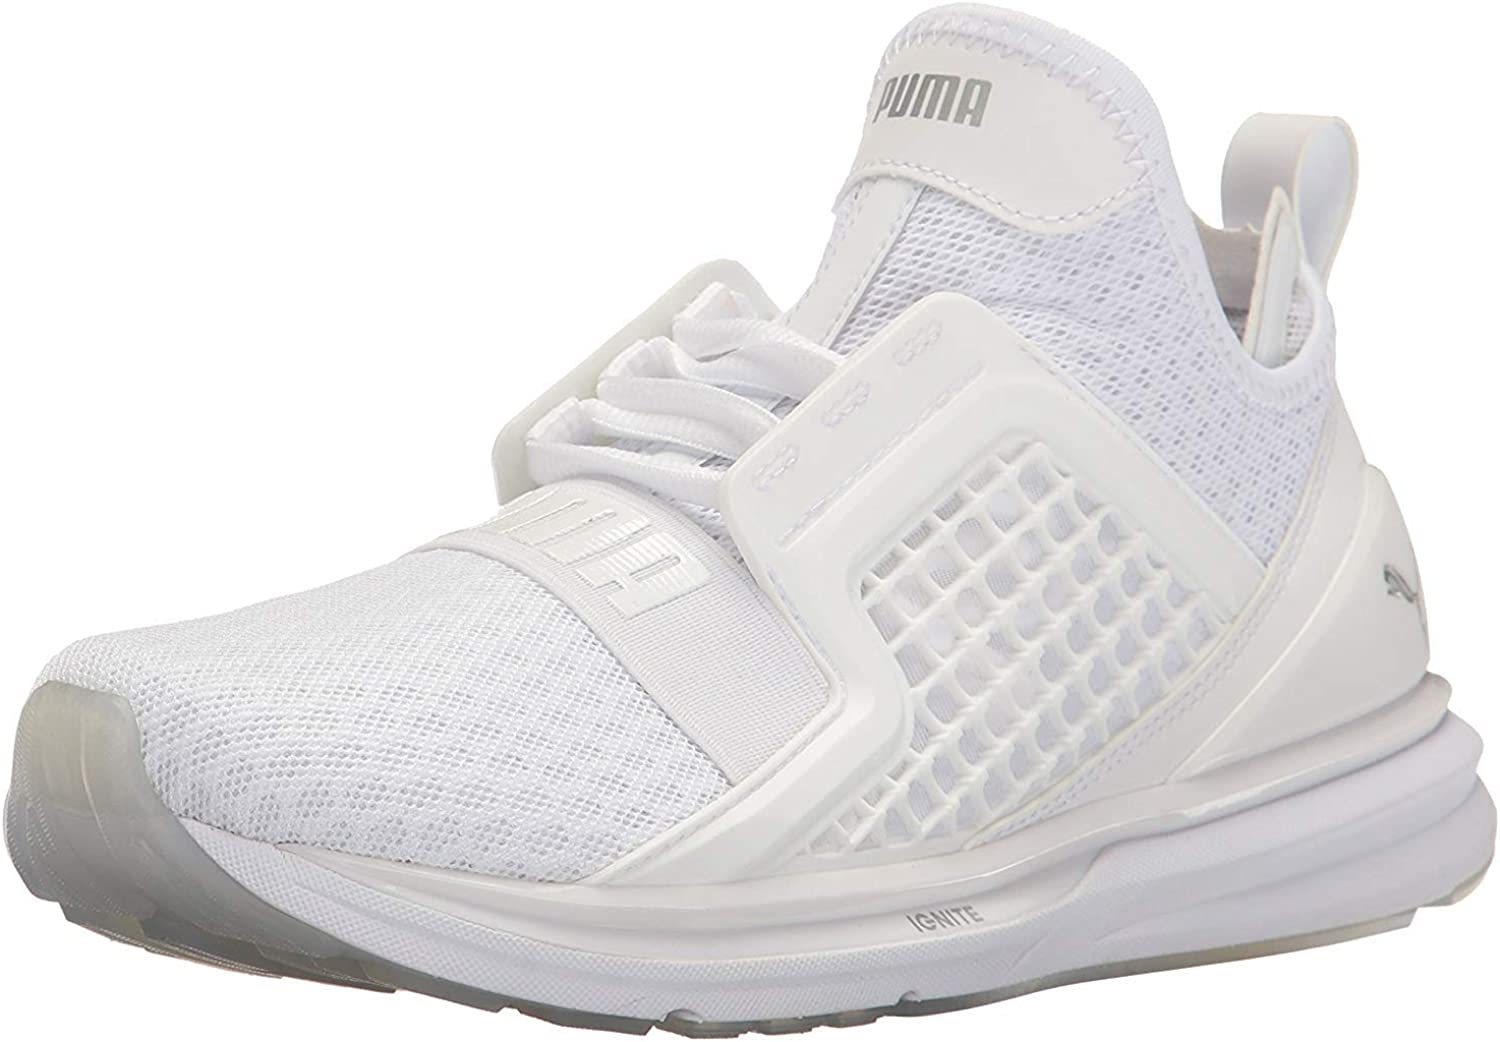 PUMA Men's Ignite Limitless Cross-Trainer Shoe